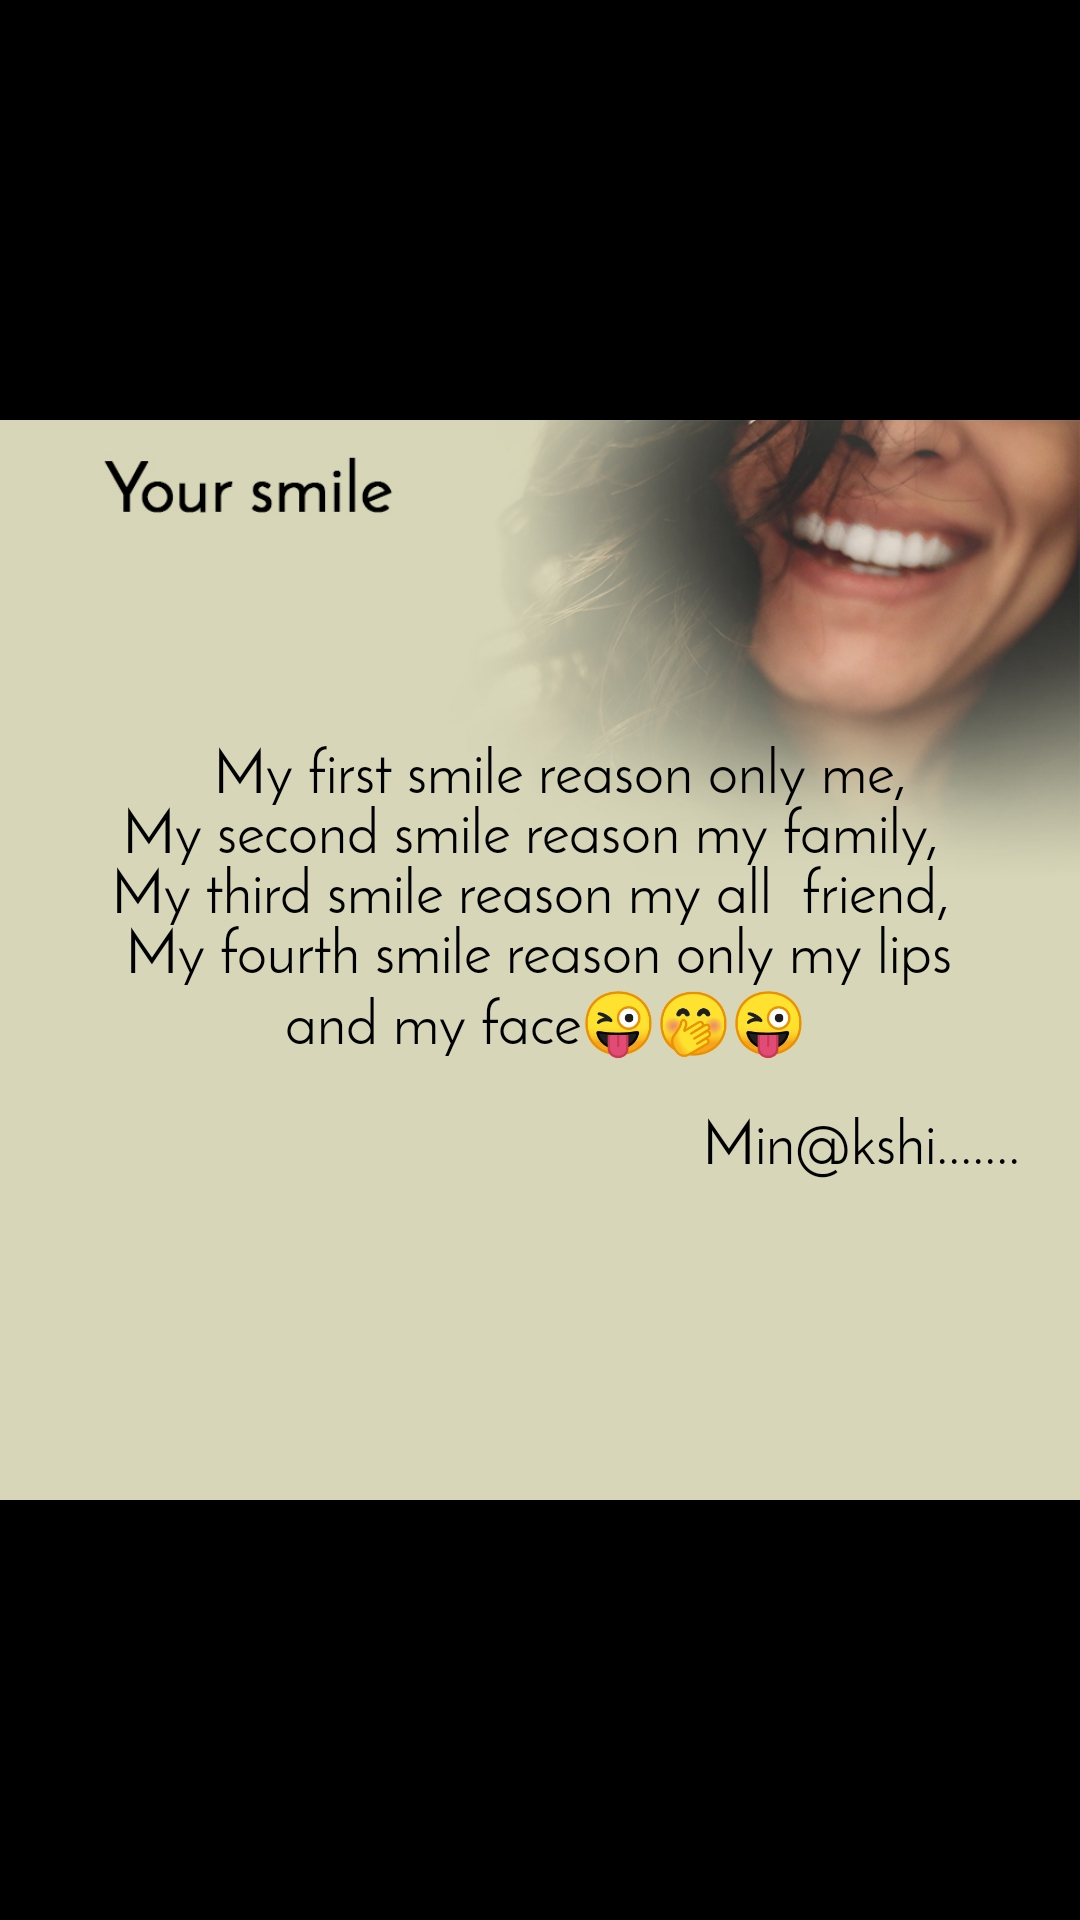 Your smile      My first smile reason only me,  My second smile reason my family,  My third smile reason my all  friend,  My fourth smile reason only my lips  and my face😜🤭😜                                             Min@kshi.......